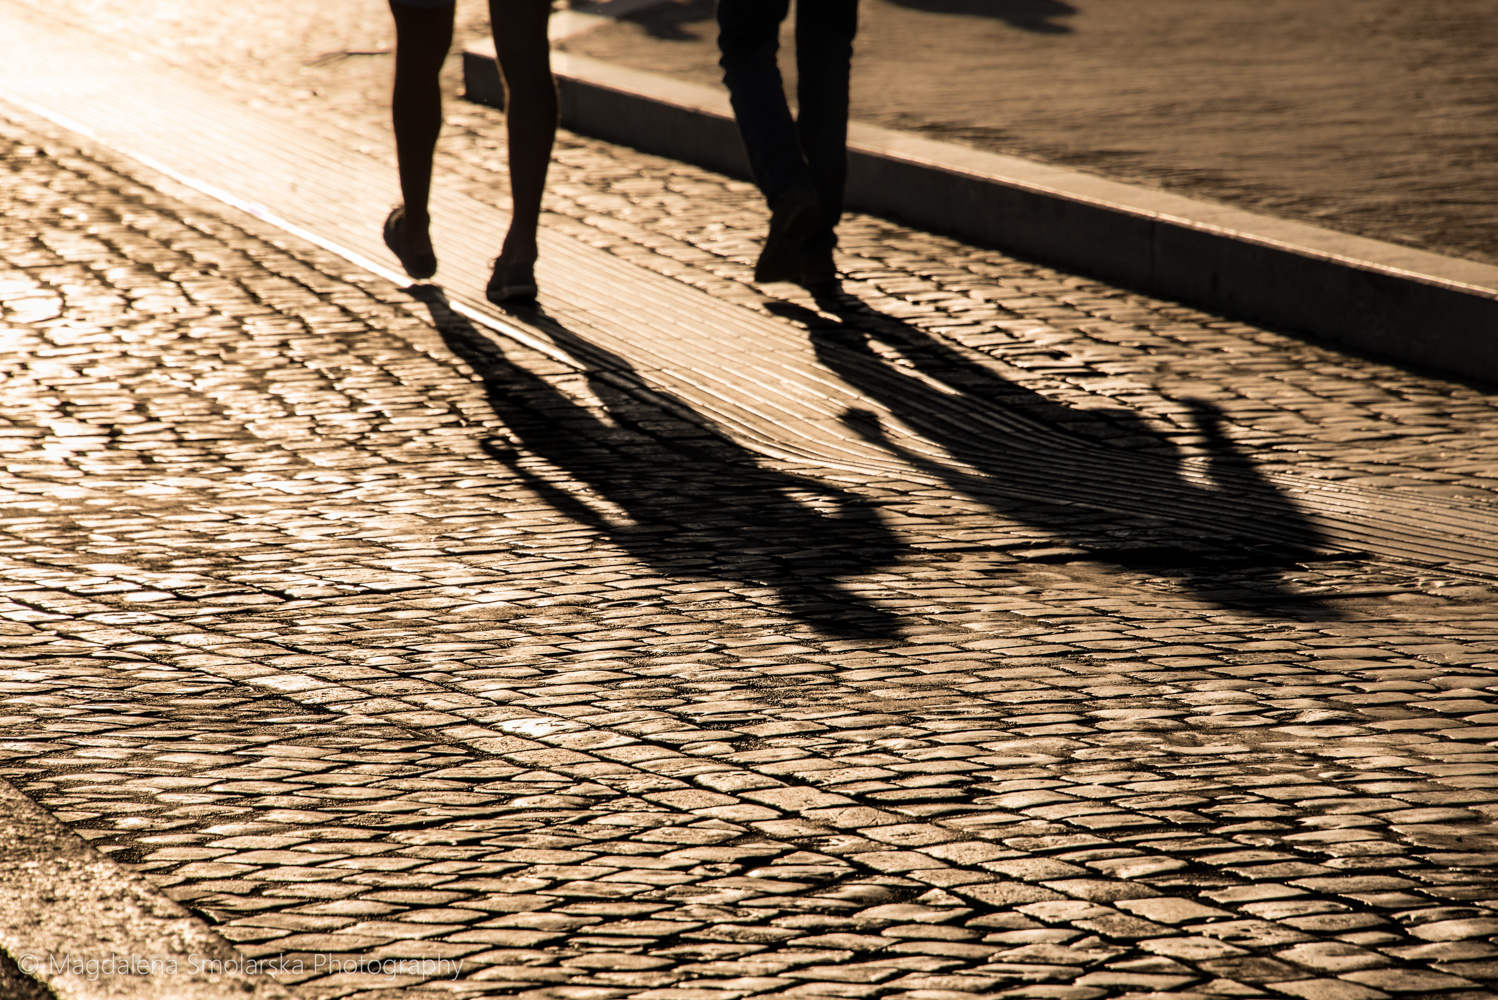 London & Brighton Portrait Photographer- Walking shadows in Rome with Magdalena Smolarska